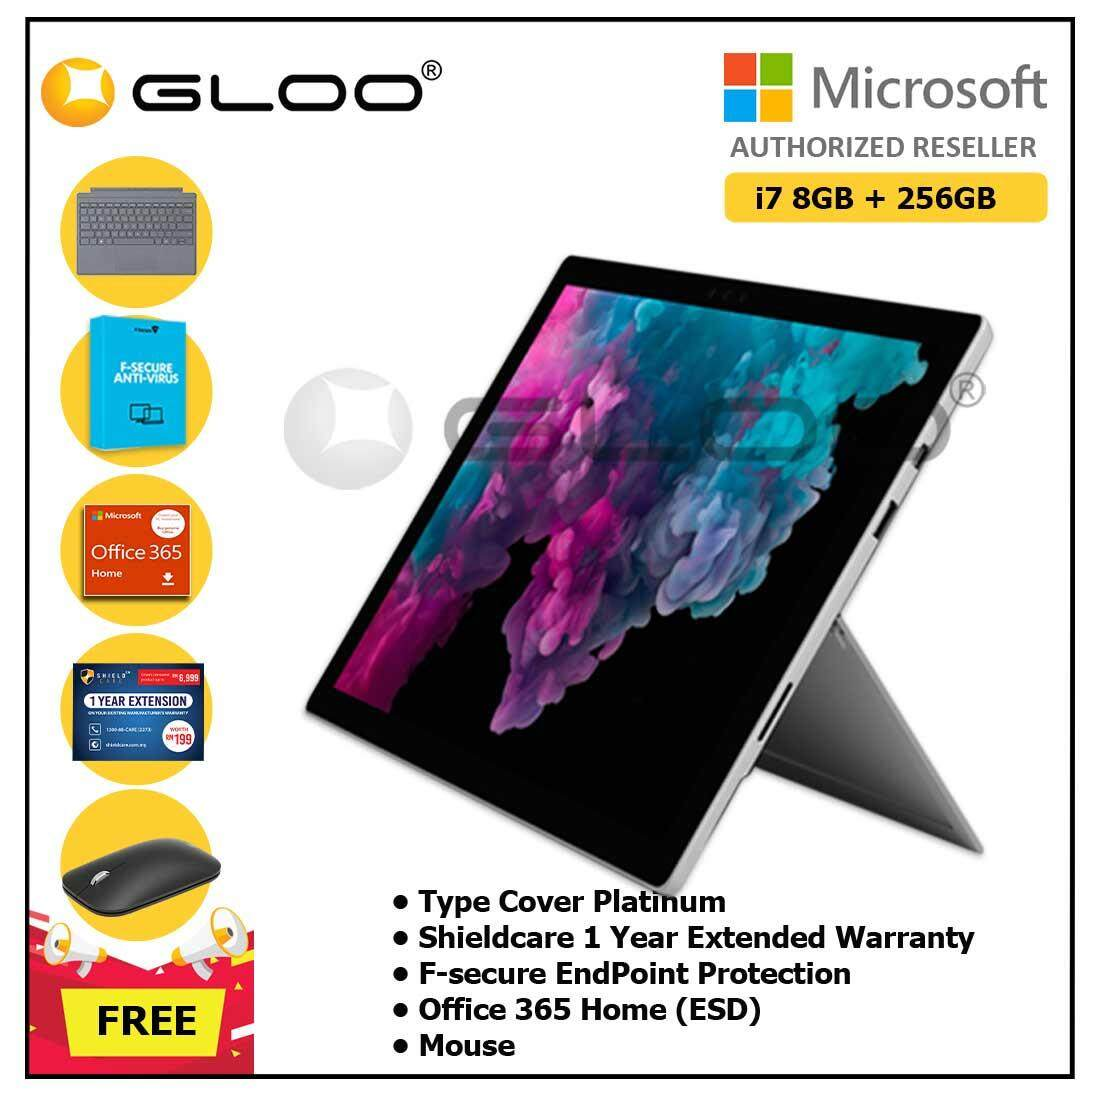 Microsoft Surface Pro 6 Core i7/8GB RAM - 256GB + Type Cover Platinum + Office 365 Home (ESD) + Shieldcare 1 Year Extended Warranty + F-Secure Endpoint Protection + Mouse